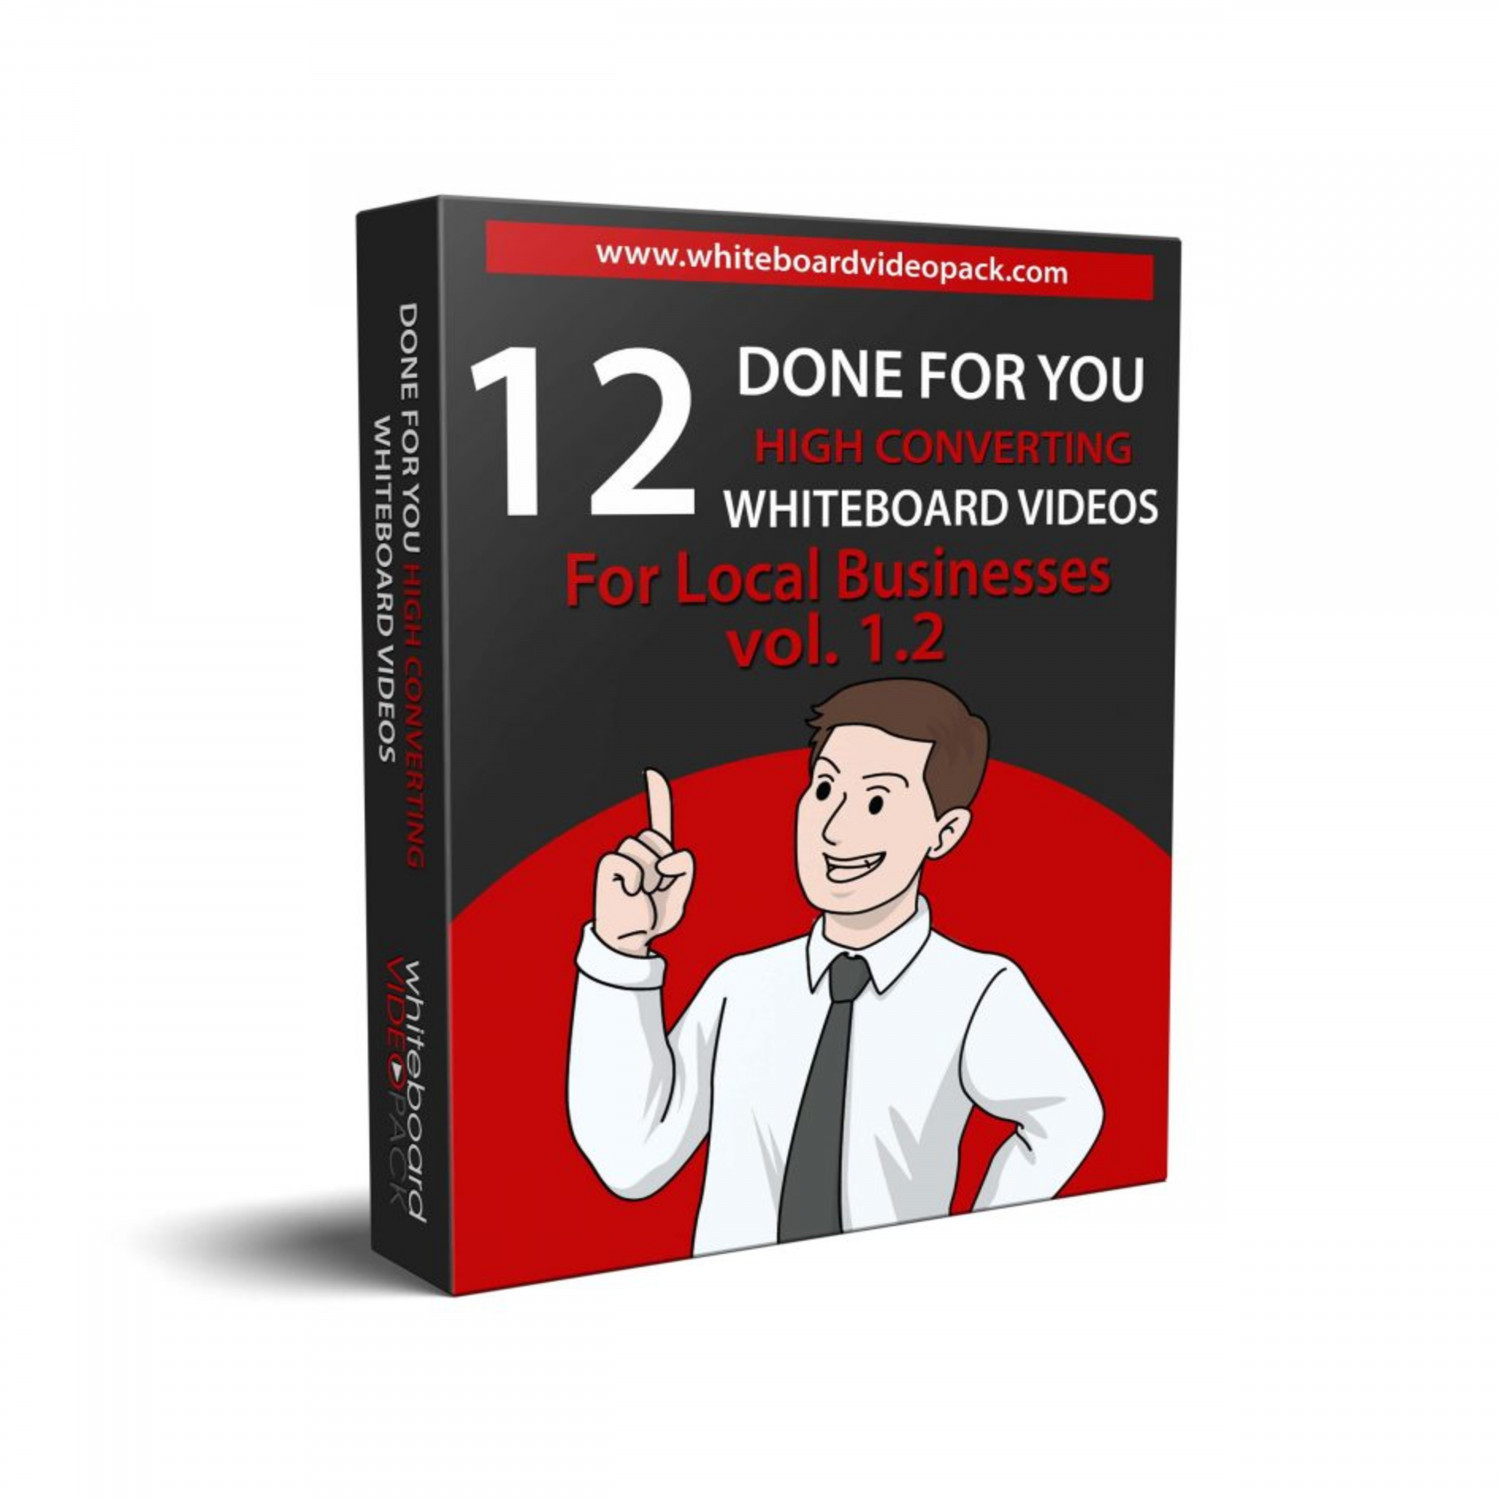 DFY Whiteboard Video Pack Vol. 1.2 review & huge +100 bonus items Infographic